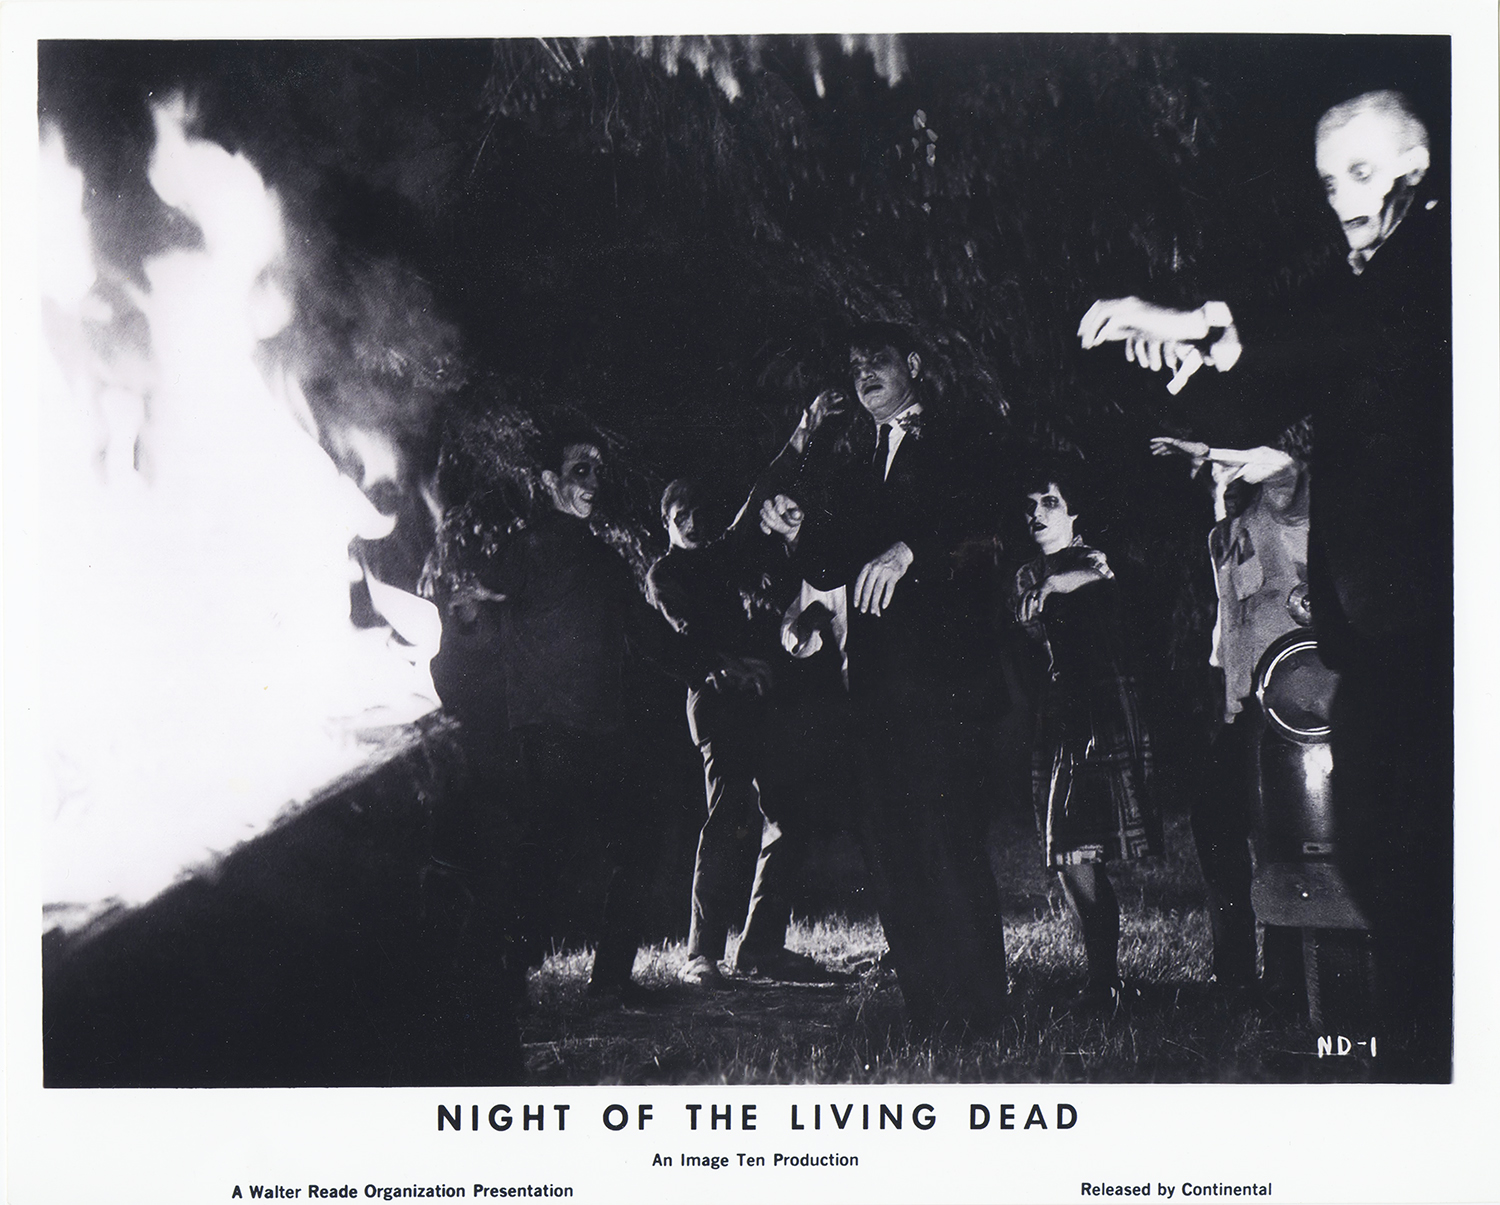 Still from George Romero's Night of the Living Dead. From the Leland Hartman Papers and Photographs, MSS 896, Detre Library & Archives at the History Center.